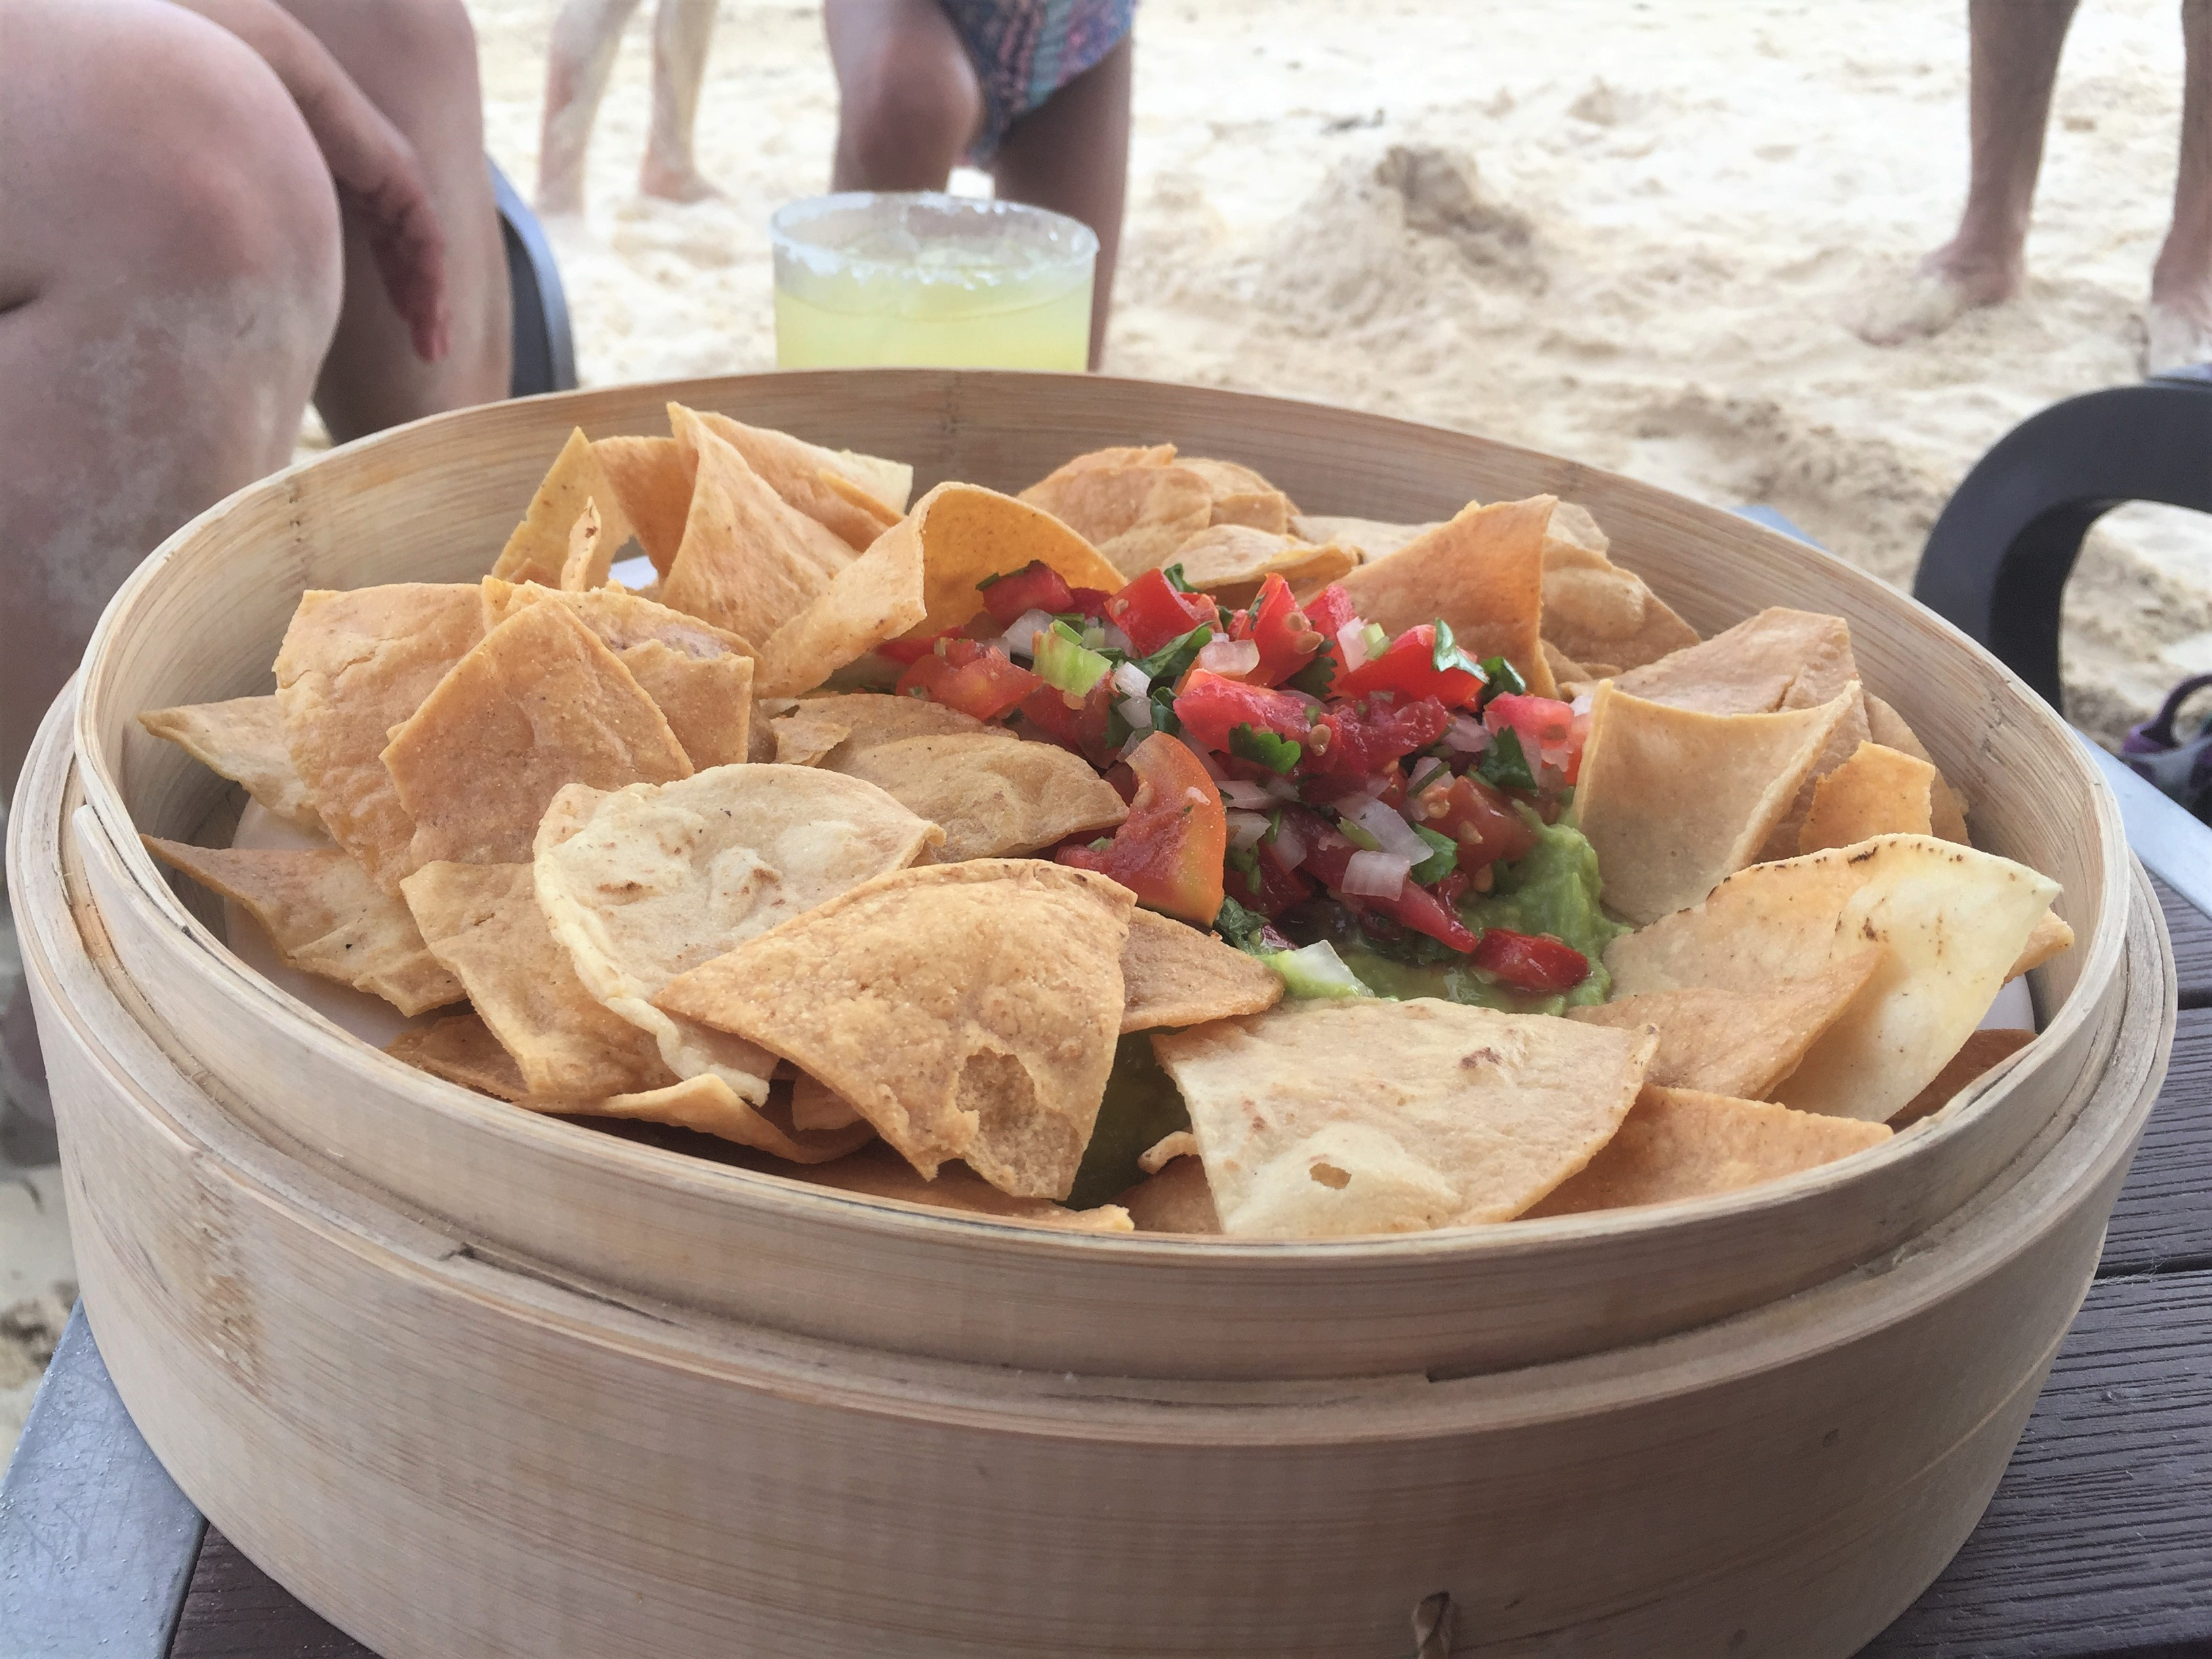 trip to mexico, mexican holiday, family travel, family vacation to mexico, taslim jaffer writer, food